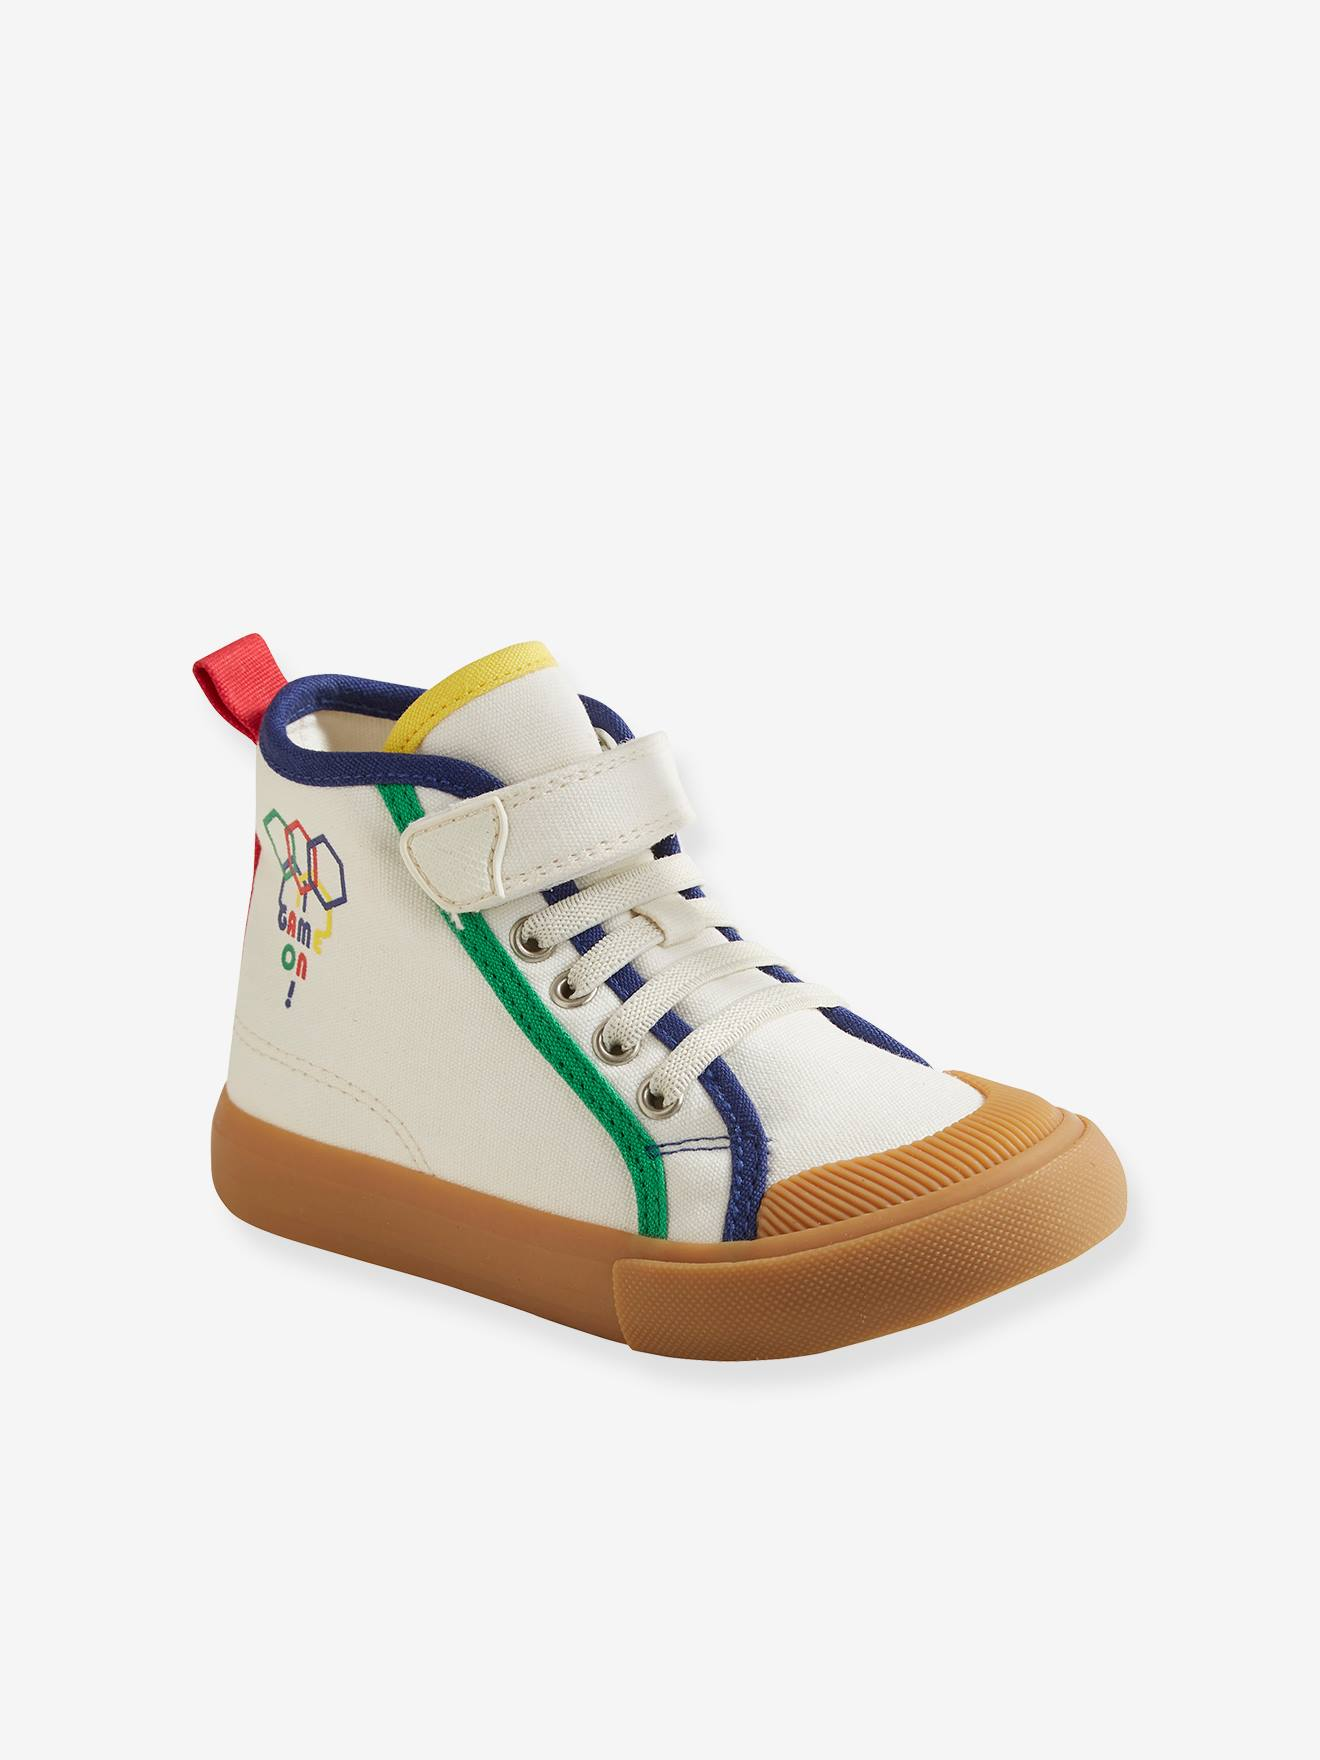 High-Top Trainers for Boys, Designed